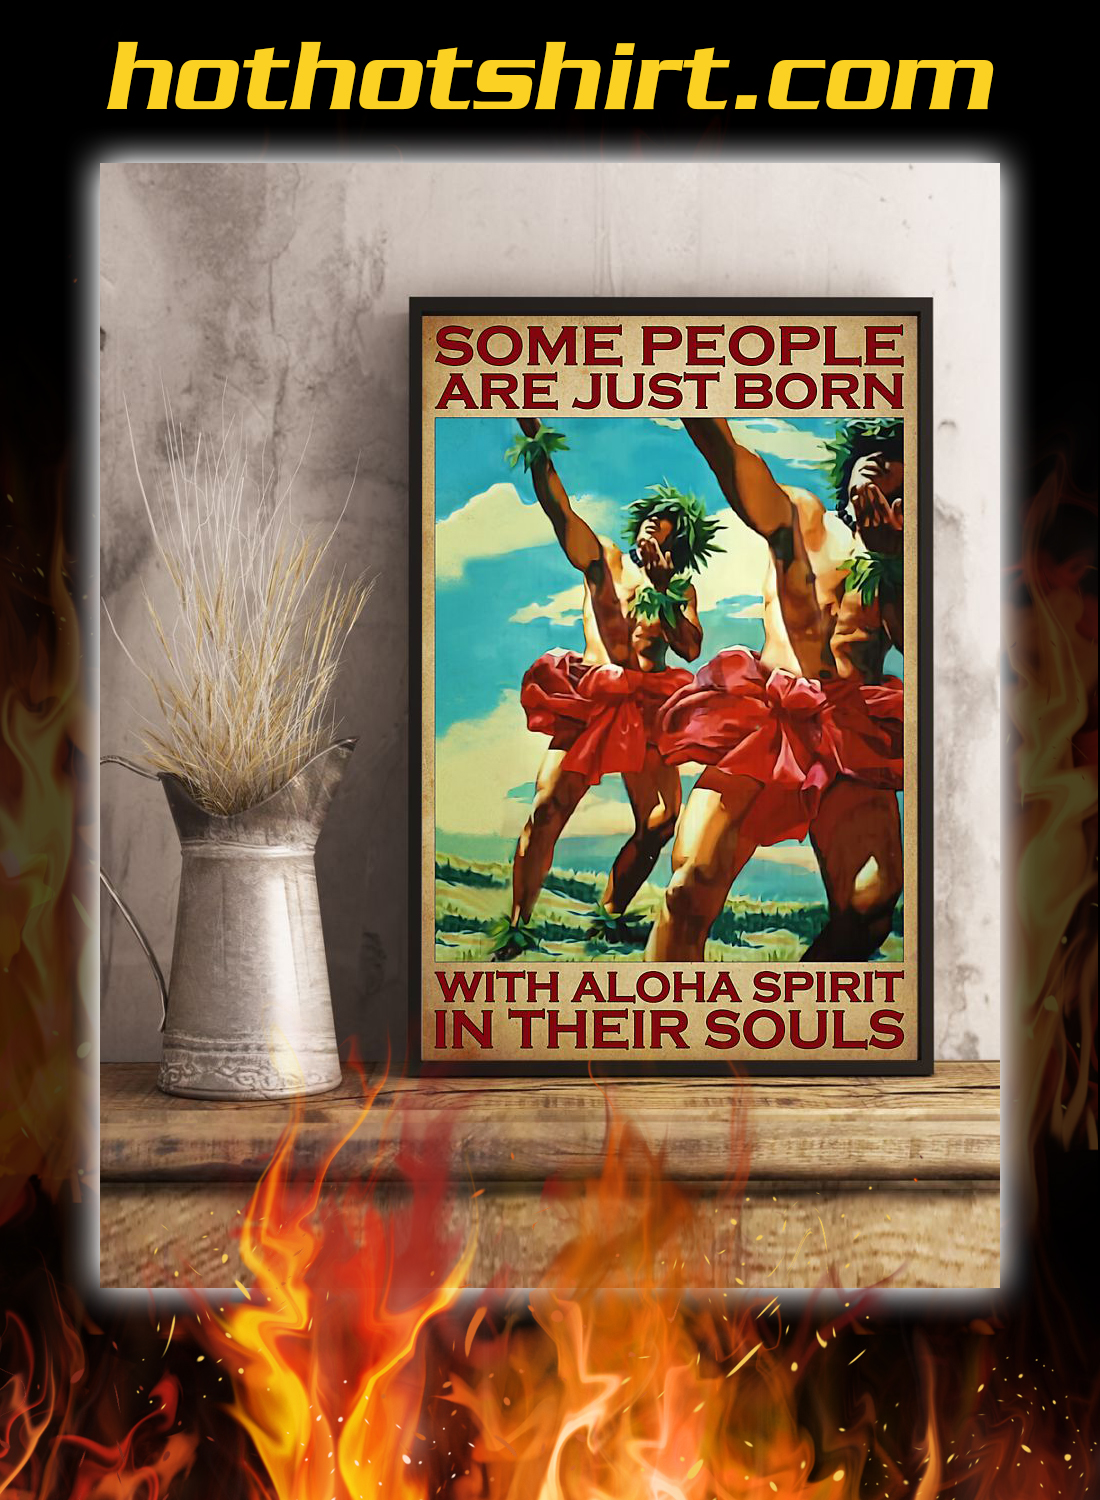 Some people are just born with aloha spirit in their souls poster 2